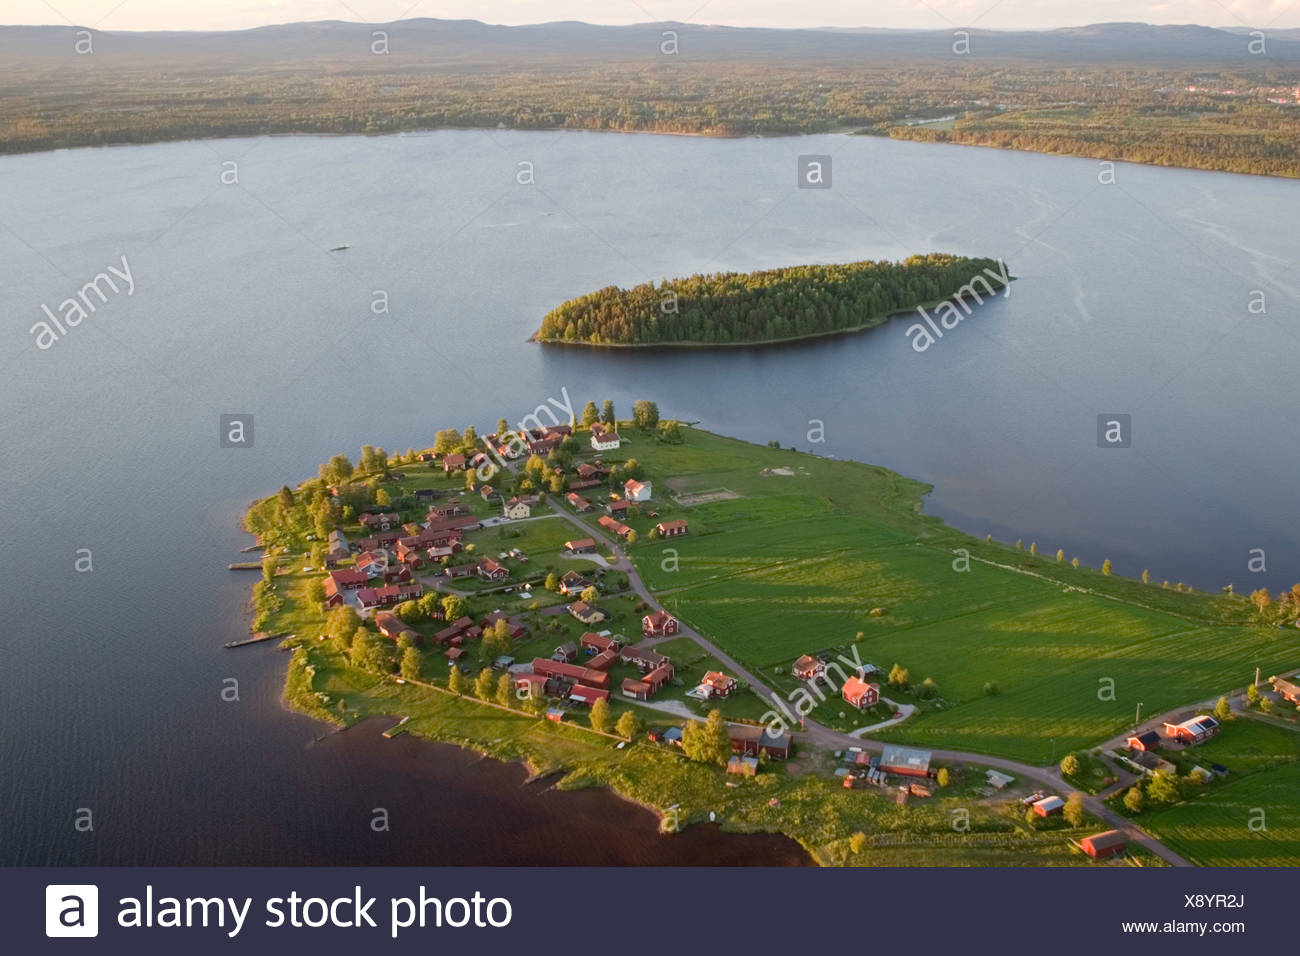 Islands in a lake, aerial view, Dalarna, Sweden. Stock Photo